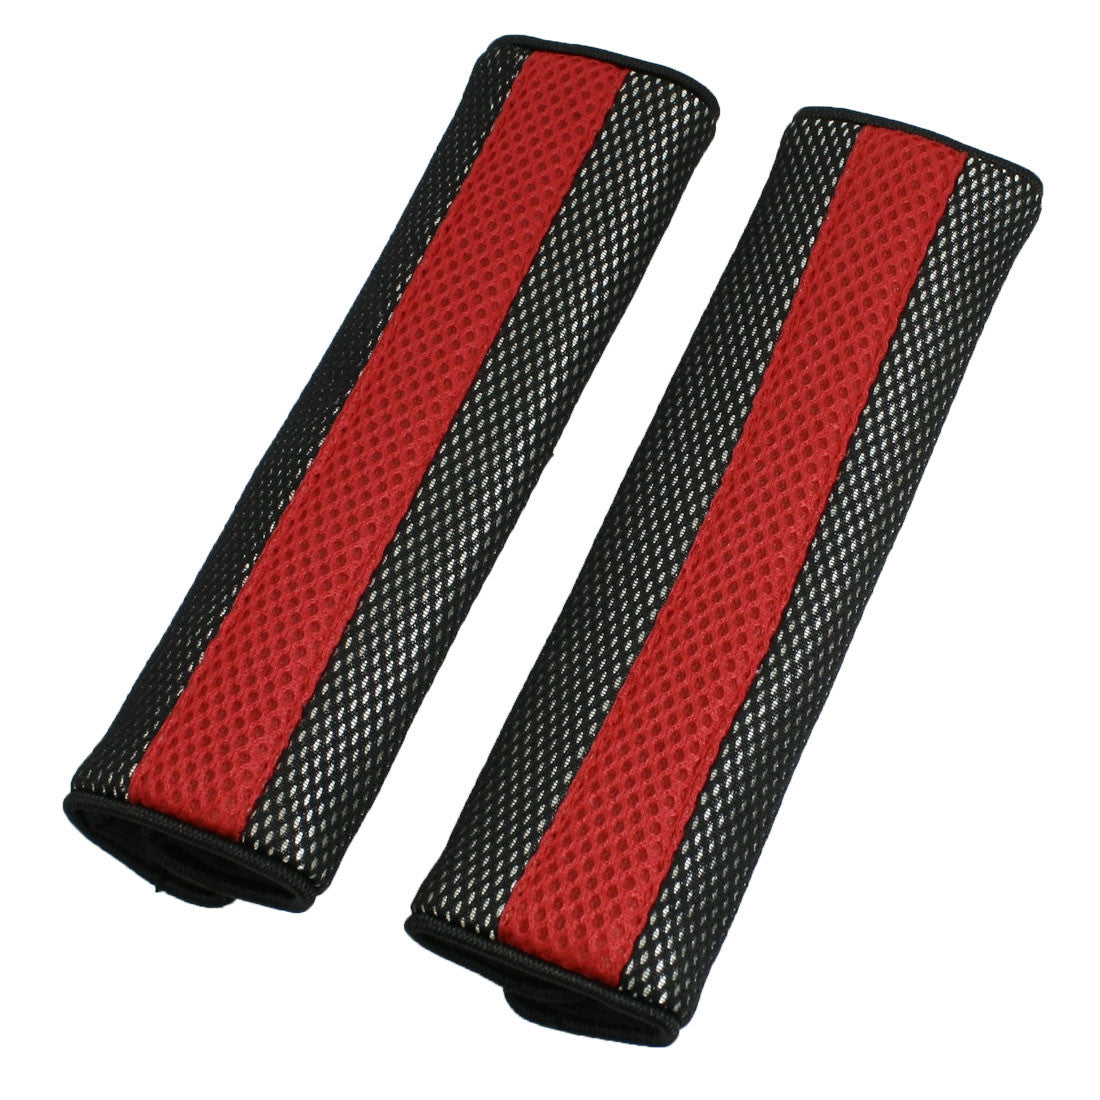 X Autohaux Motor Detachable Fastener Red Black Seatbelt Cover Pad Pair